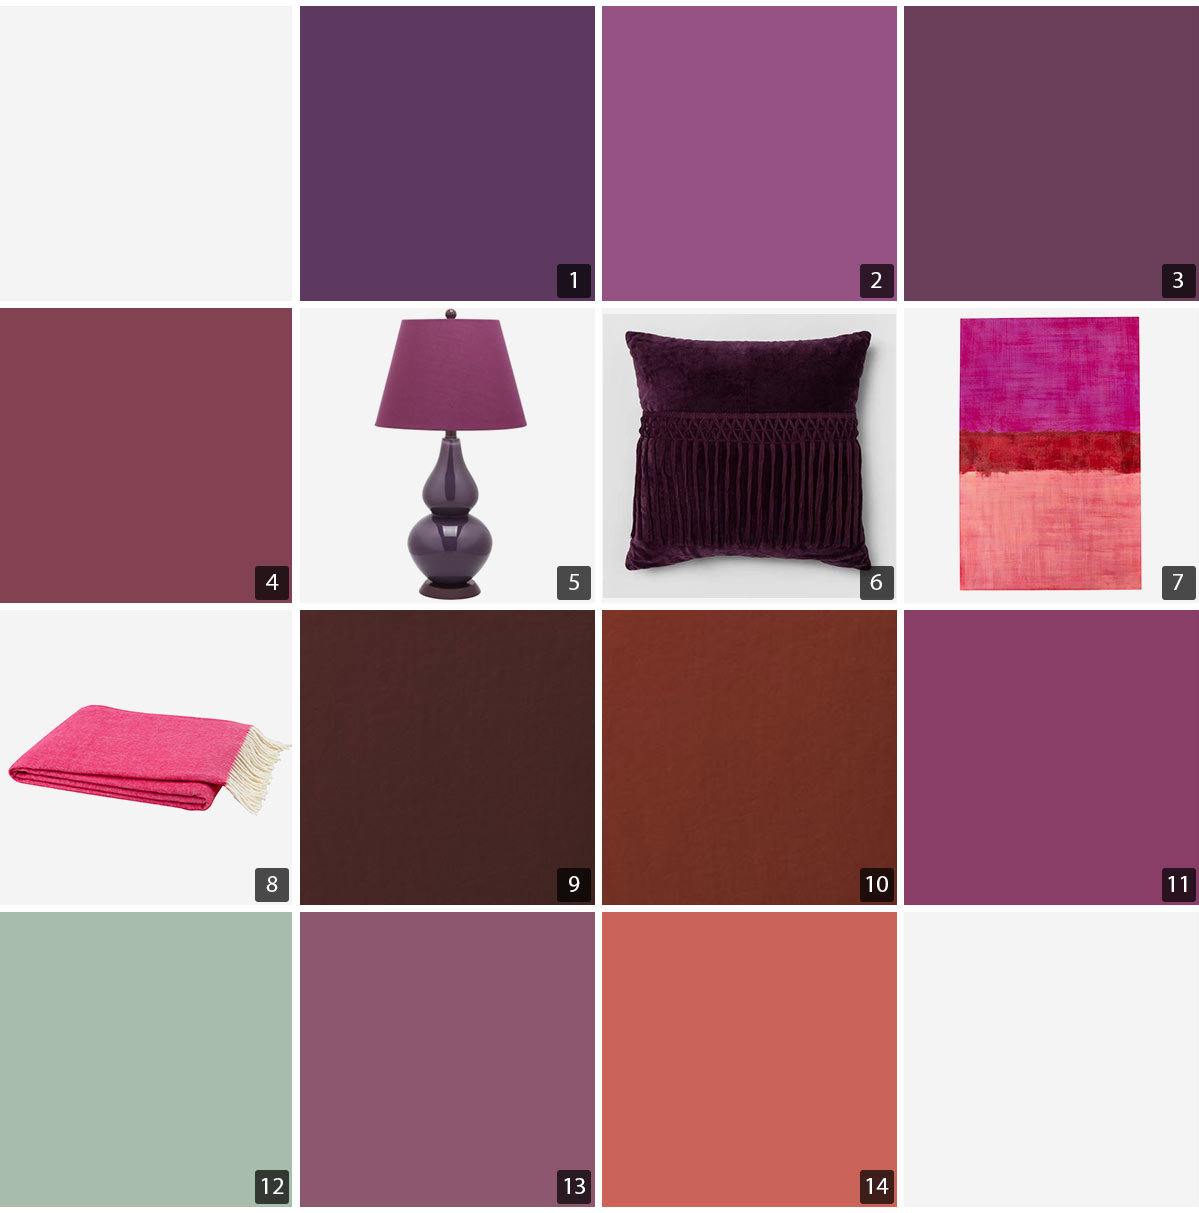 Collage of home decor including a lamp, pillow, artwork, throw, and paint colors. photo